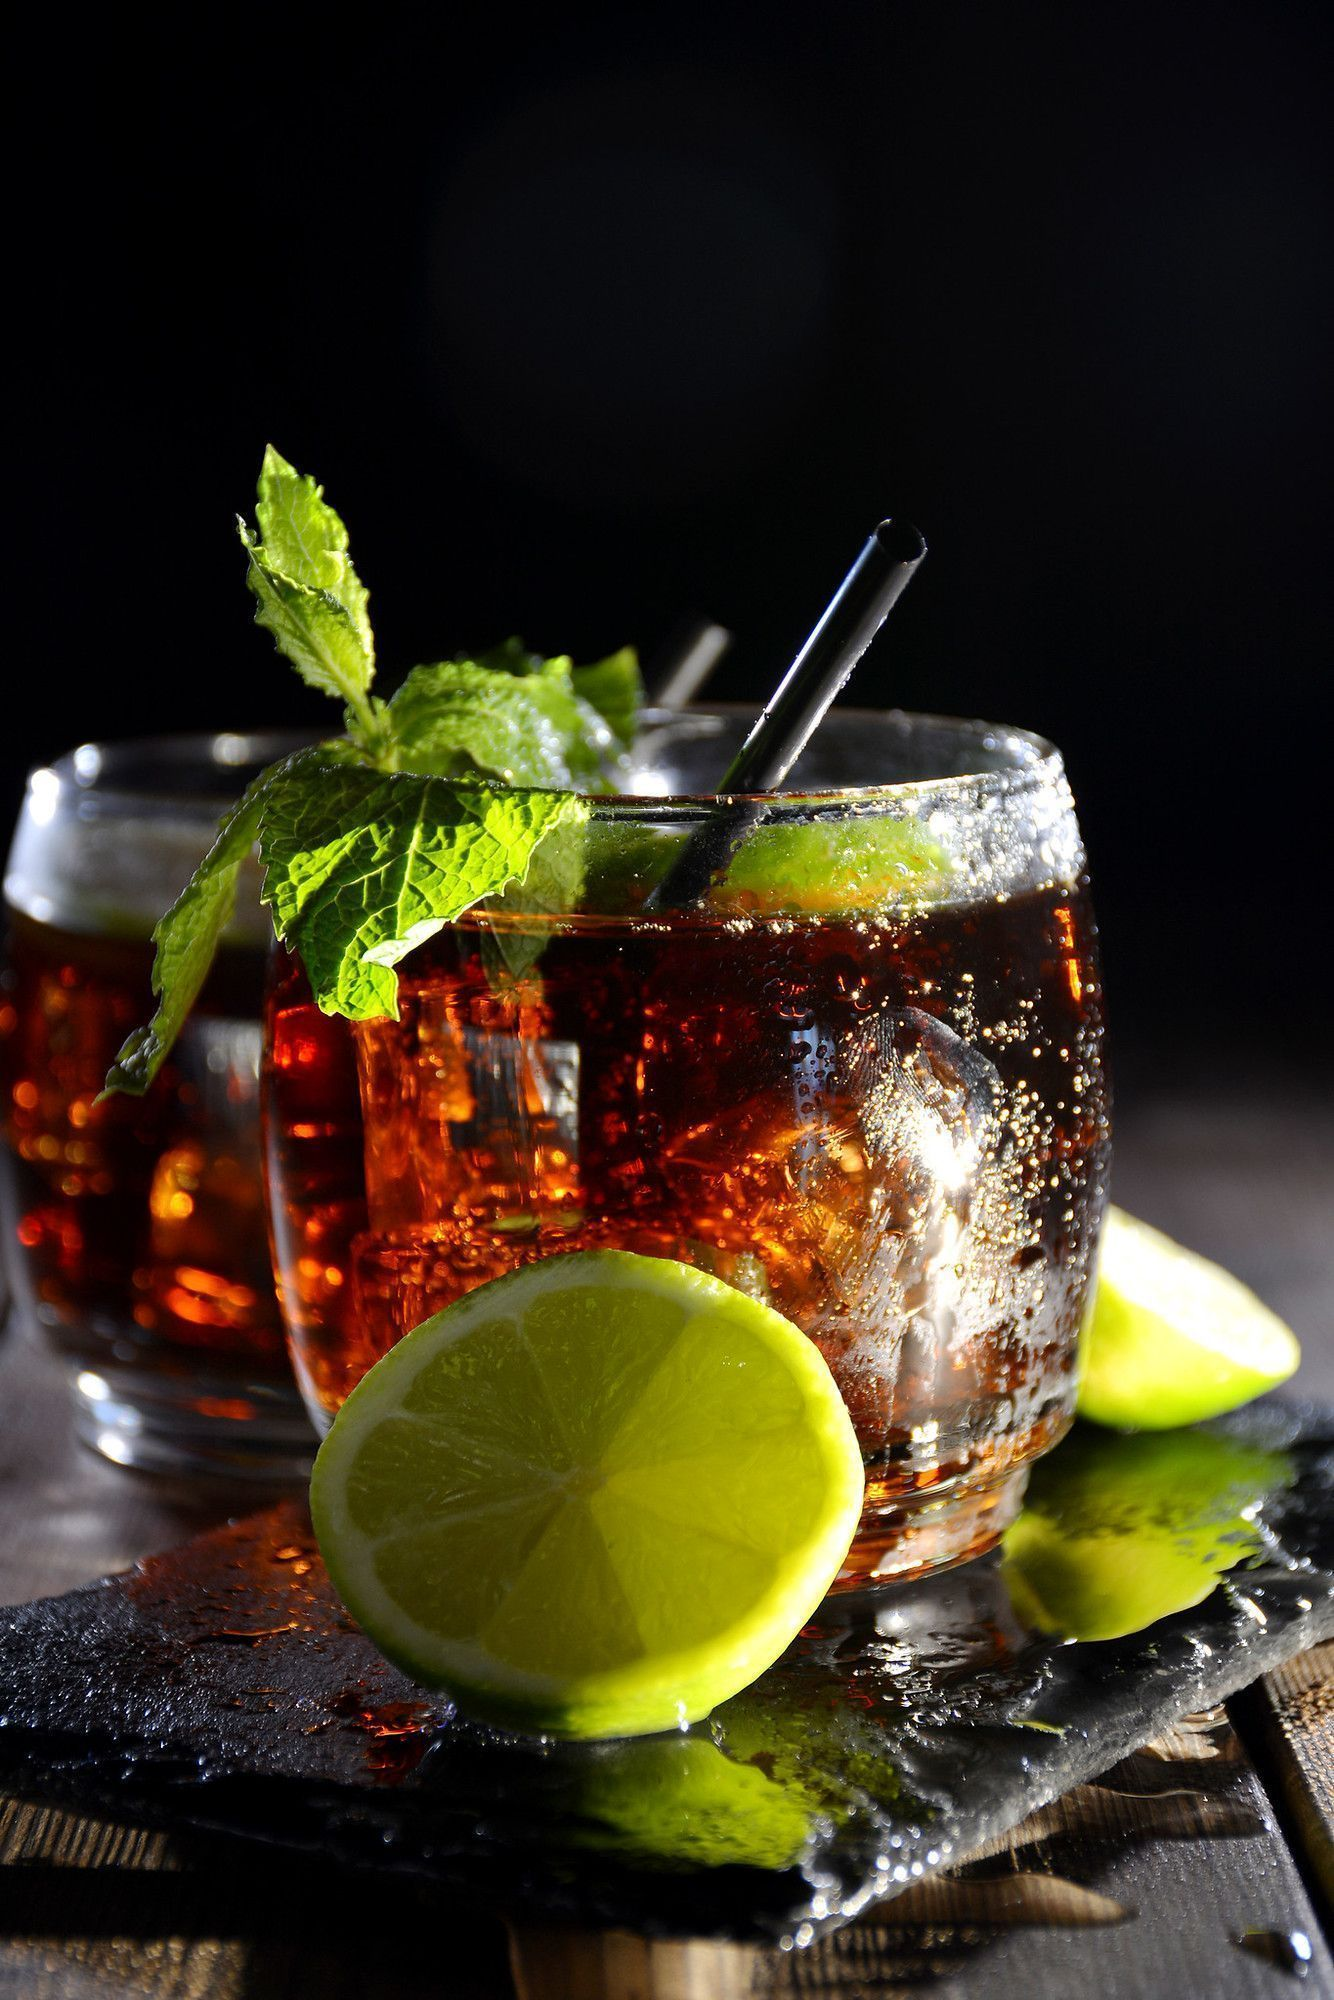 The Cuba libre cocktail isn't just rum and Coke, it also comes with a fascinating history. #cubalibre The Cuba libre cocktail isn't just rum and Coke, it also comes with a fascinating history. #historyofcuba The Cuba libre cocktail isn't just rum and Coke, it also comes with a fascinating history. #cubalibre The Cuba libre cocktail isn't just rum and Coke, it also comes with a fascinating history. #cubalibre The Cuba libre cocktail isn't just rum and Coke, it also comes with a fascinating histor #historyofcuba